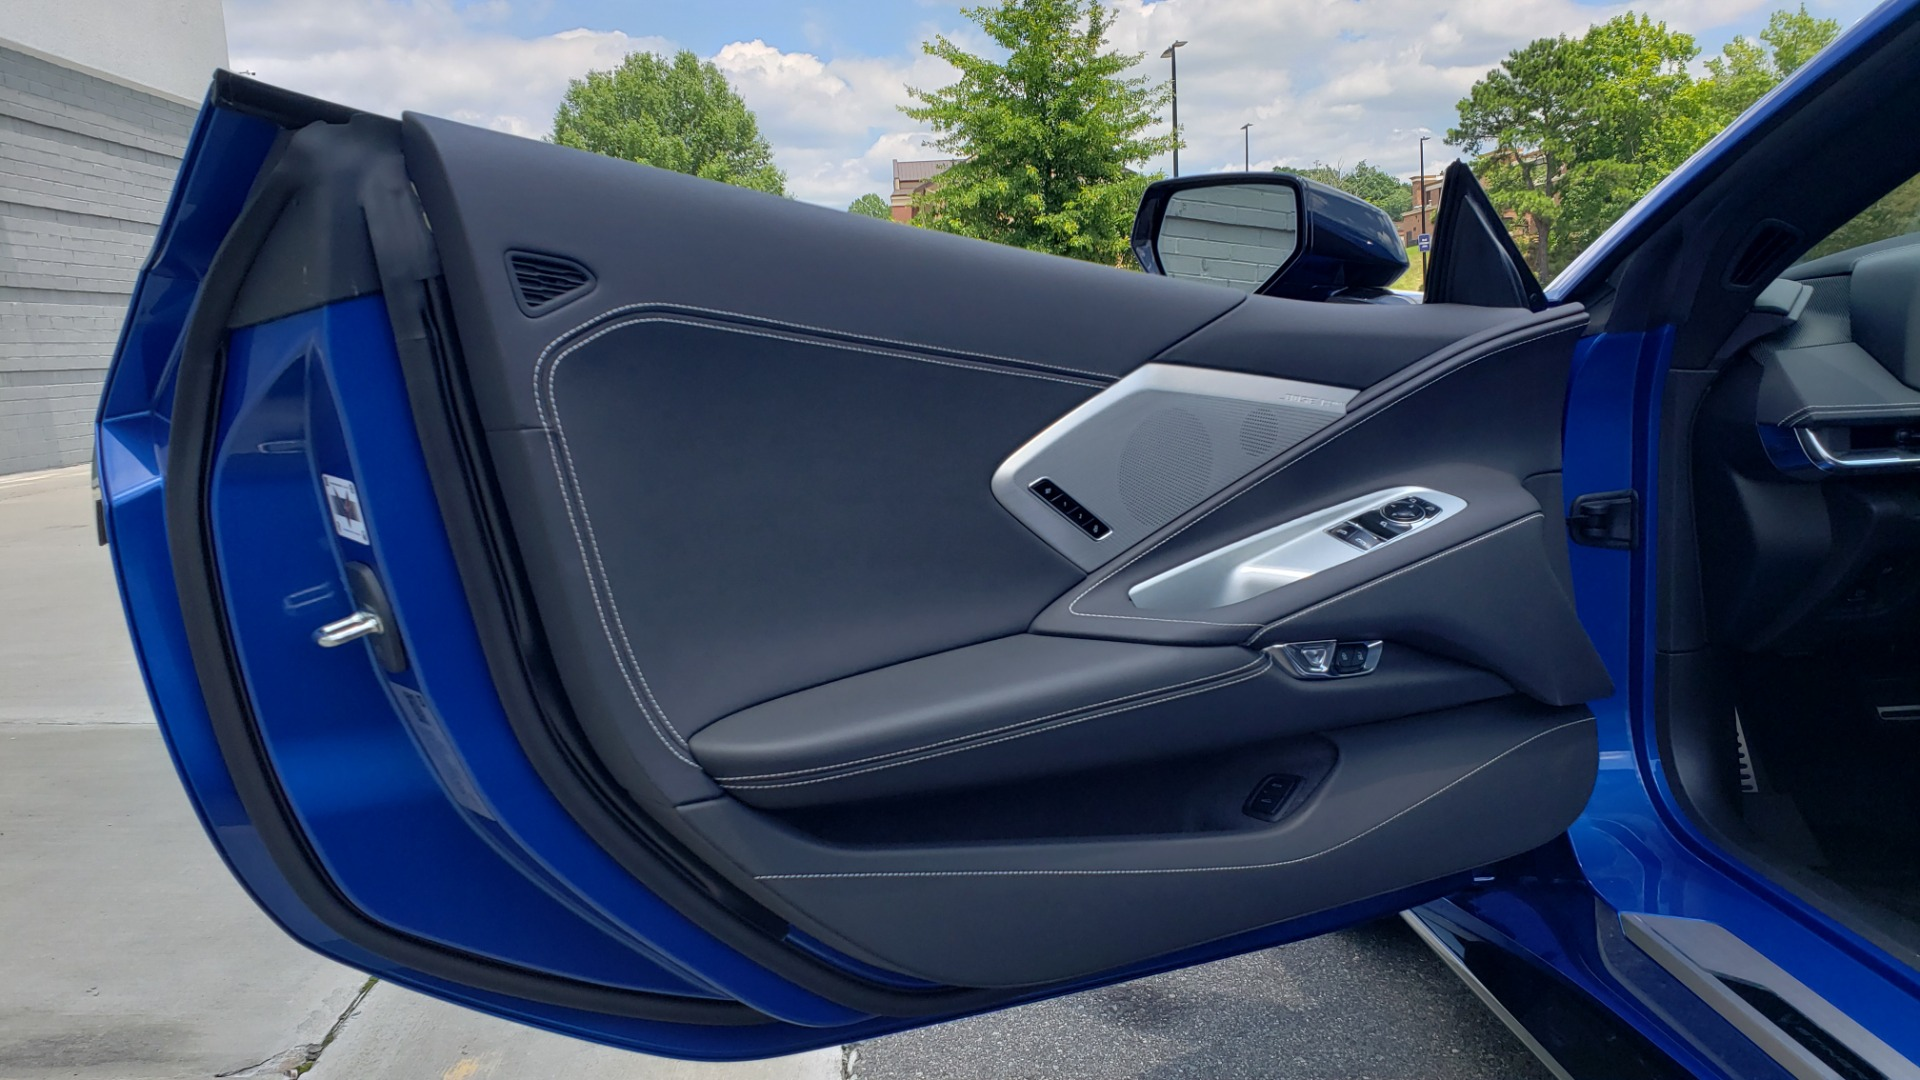 Used 2020 Chevrolet CORVETTE C8 STINGRAY COUPE 2LT / PERF & Z51 PKG / NAV / BOSE / 8-SPD AUTO / REARVIEW for sale Sold at Formula Imports in Charlotte NC 28227 31